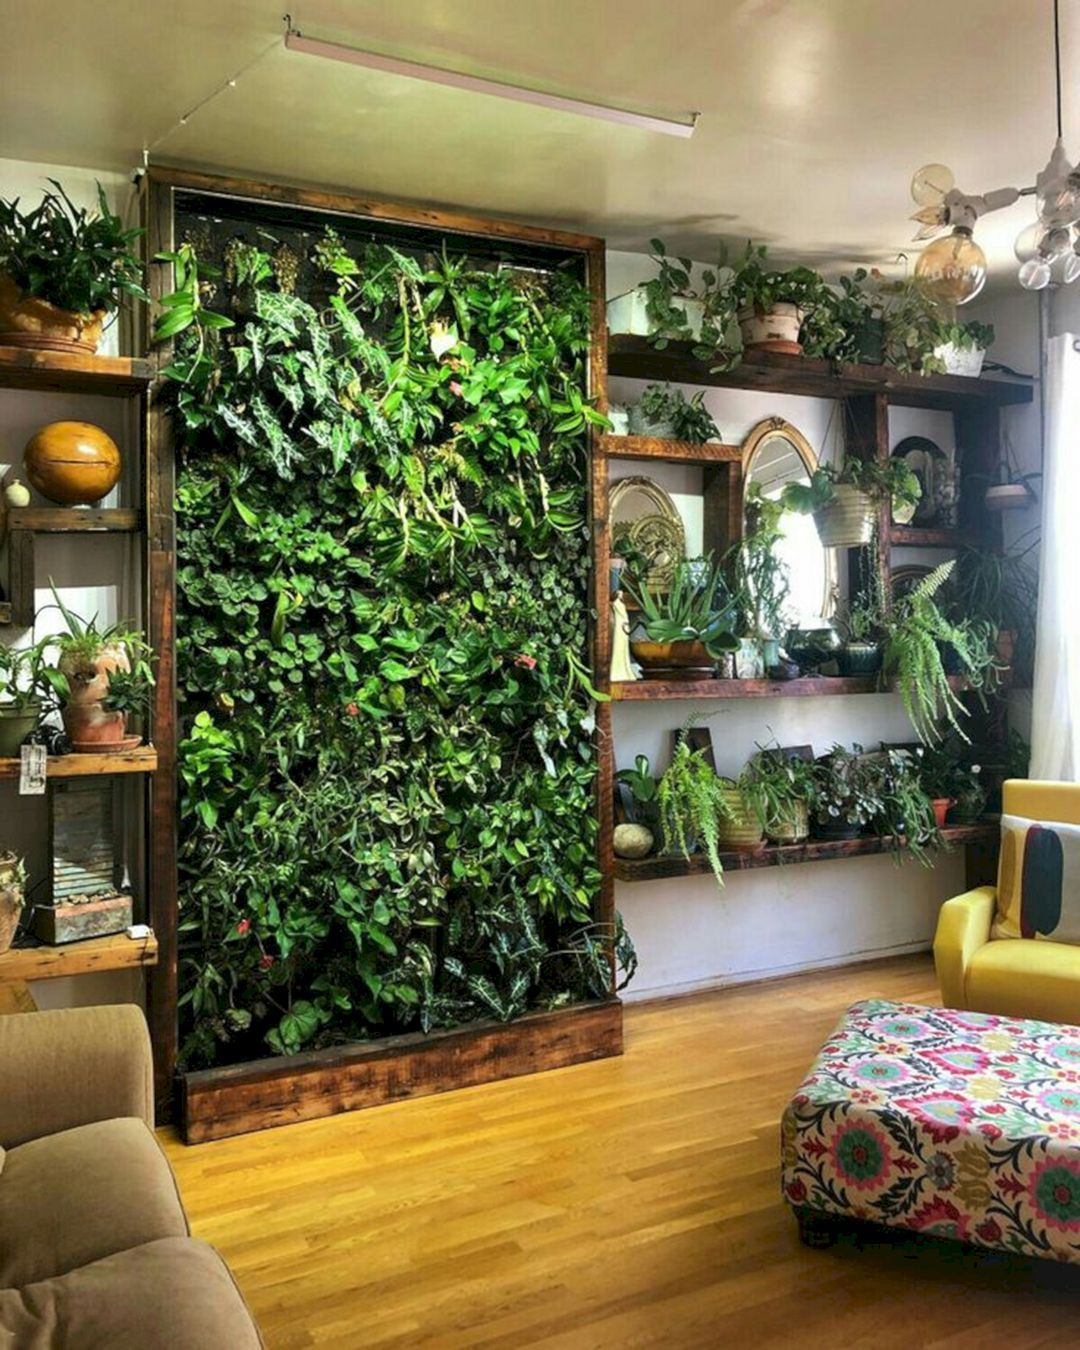 6 Astonishing Indoor Wall Garden Ideas For More Home Fresh